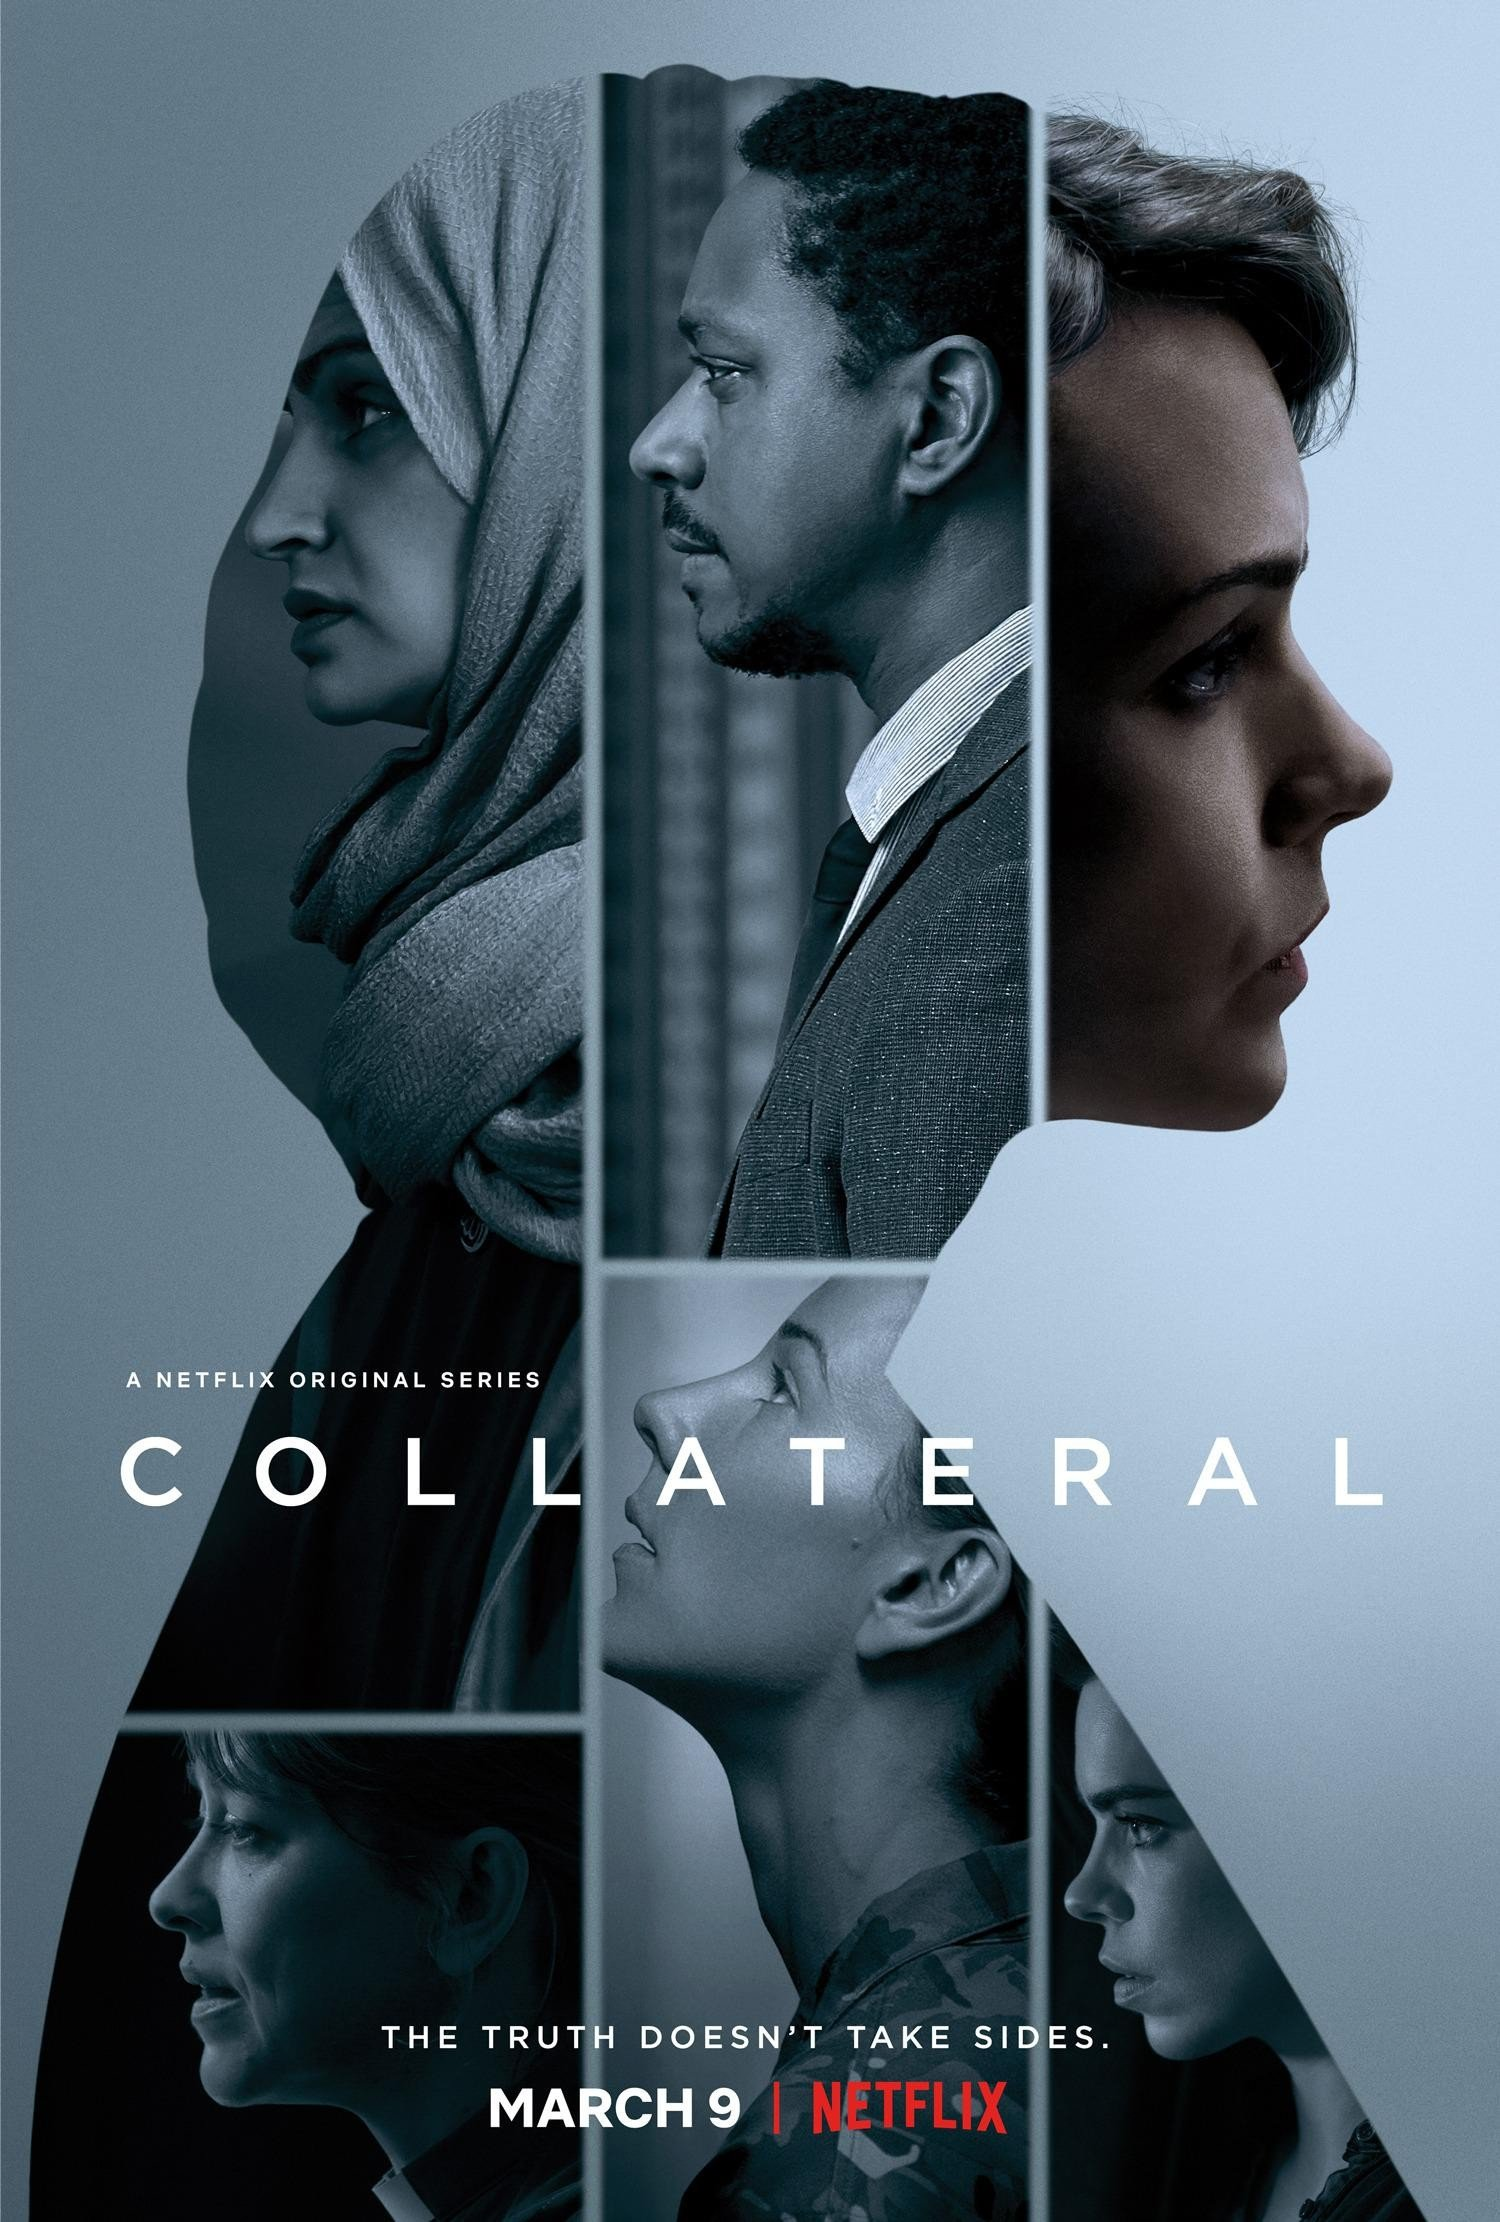 Collateral 连带伤害